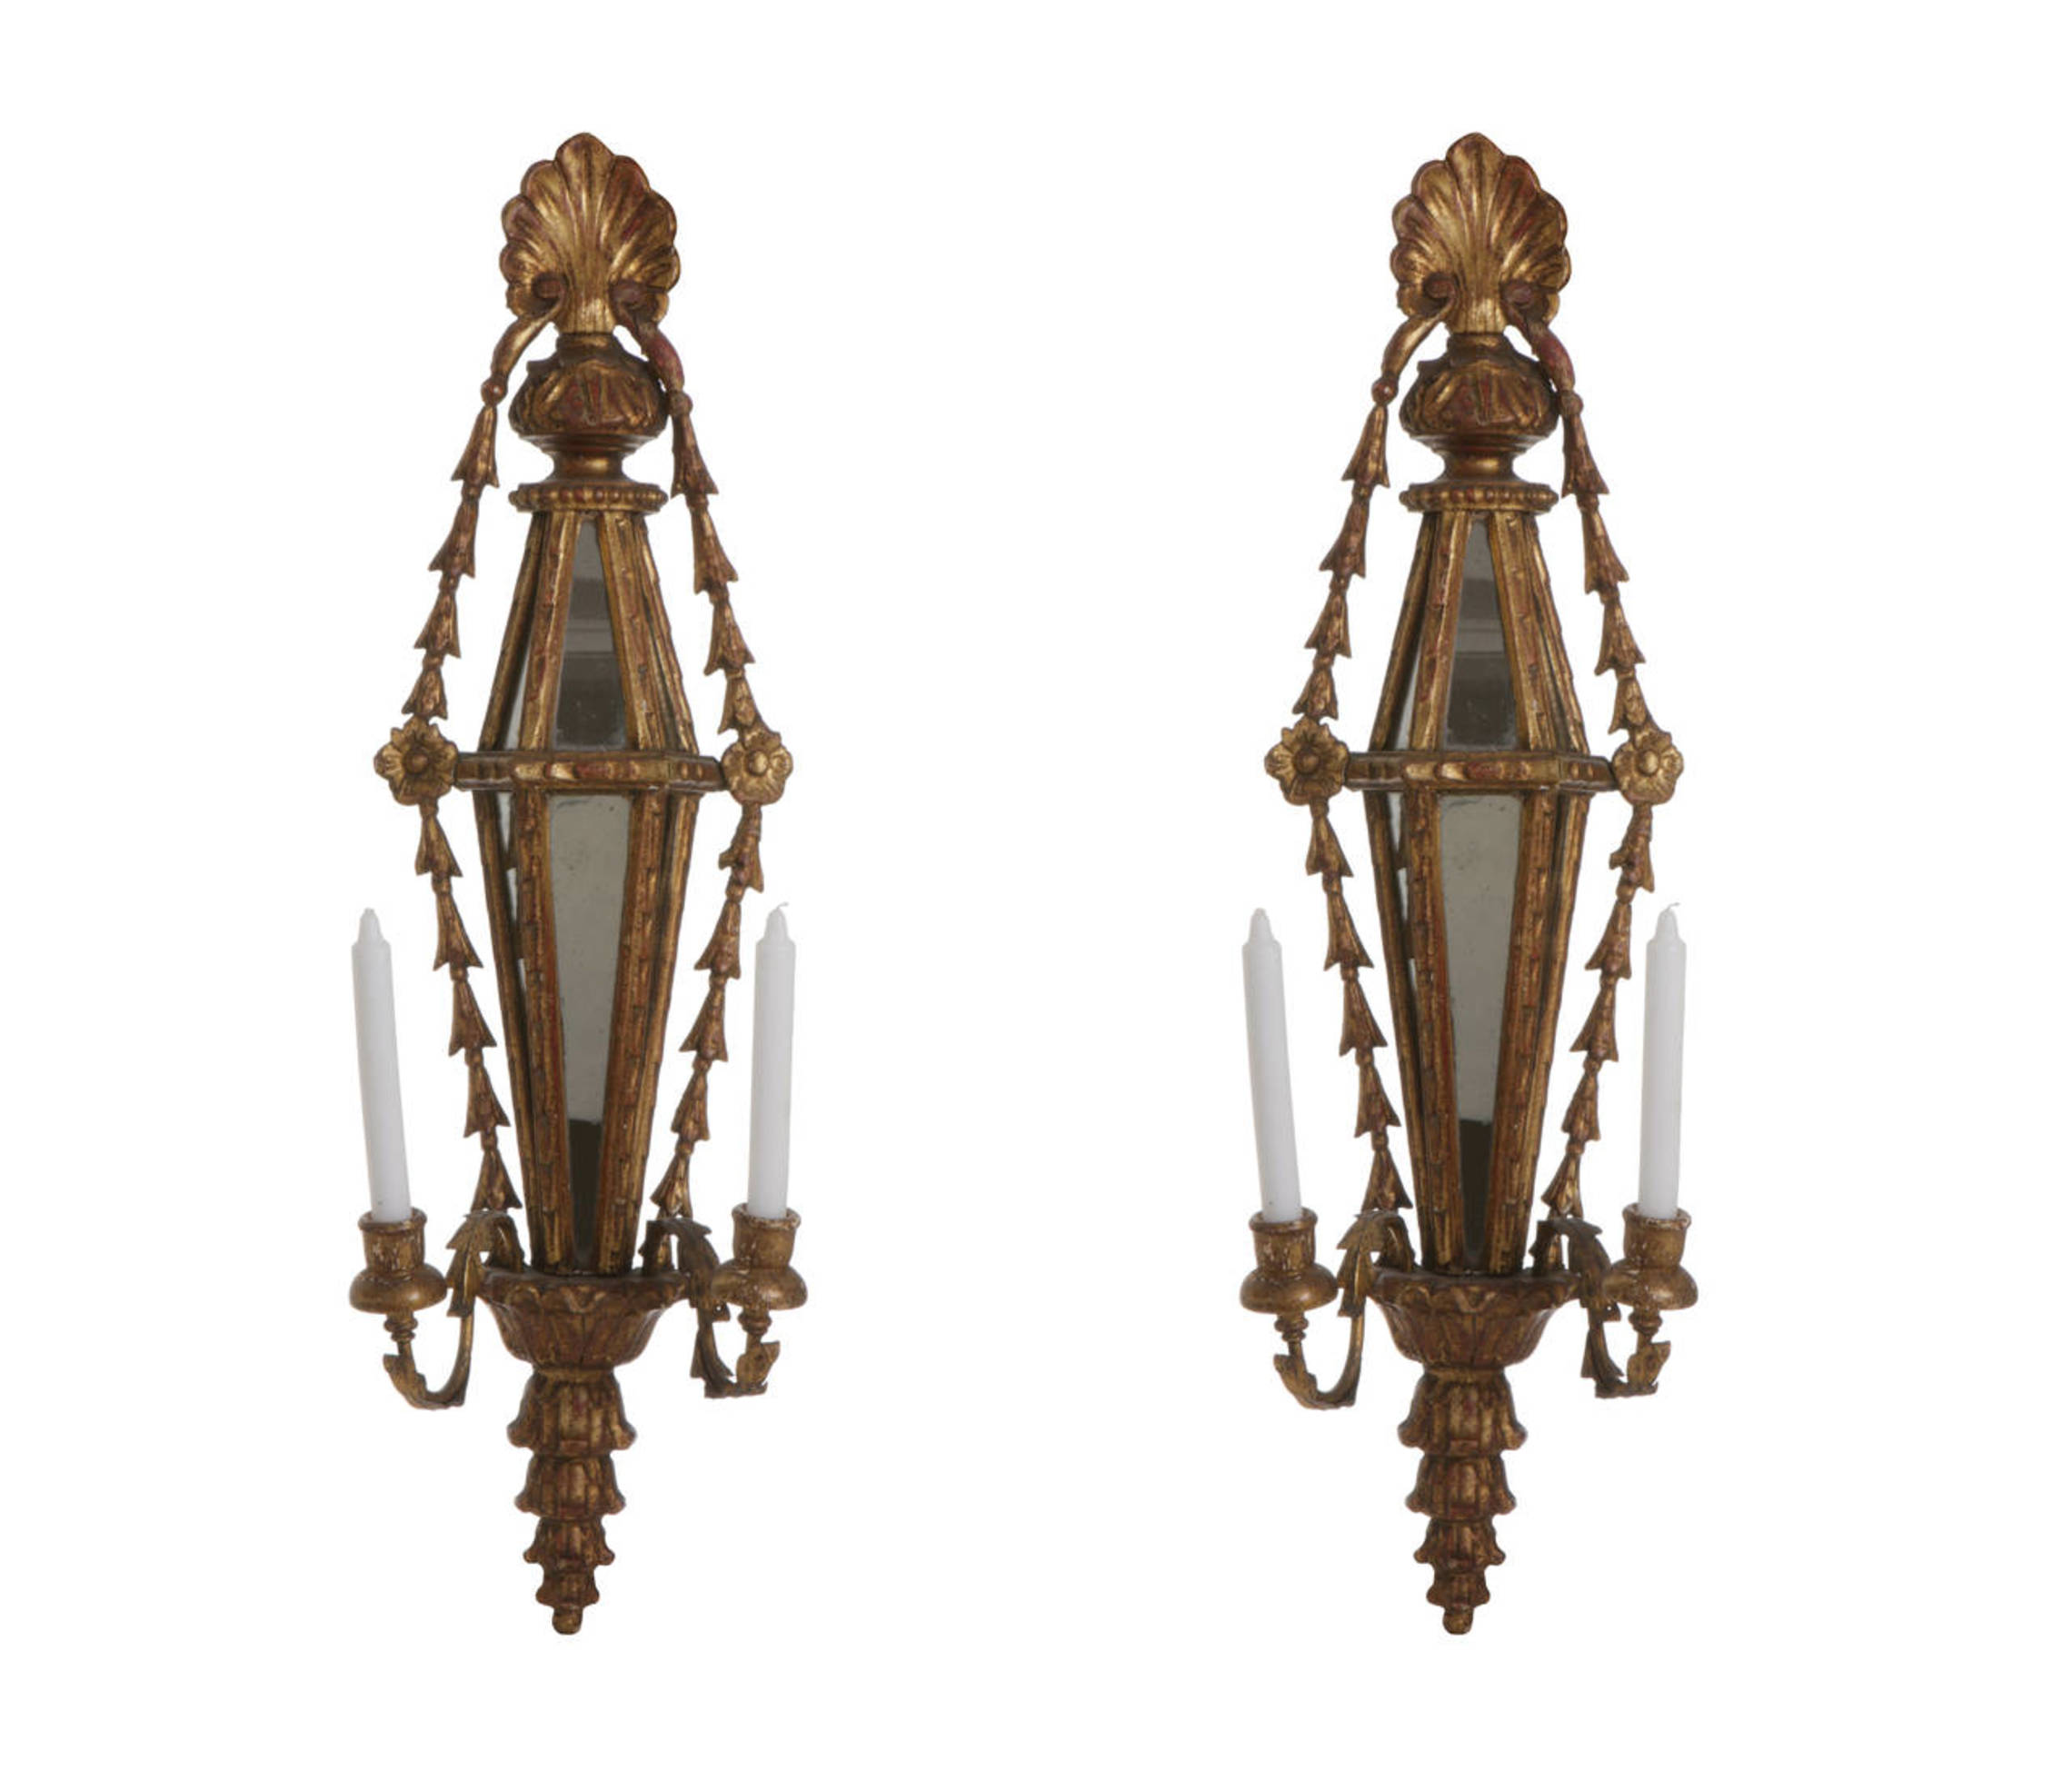 Italian Wood Gilded Candle Wall Lights